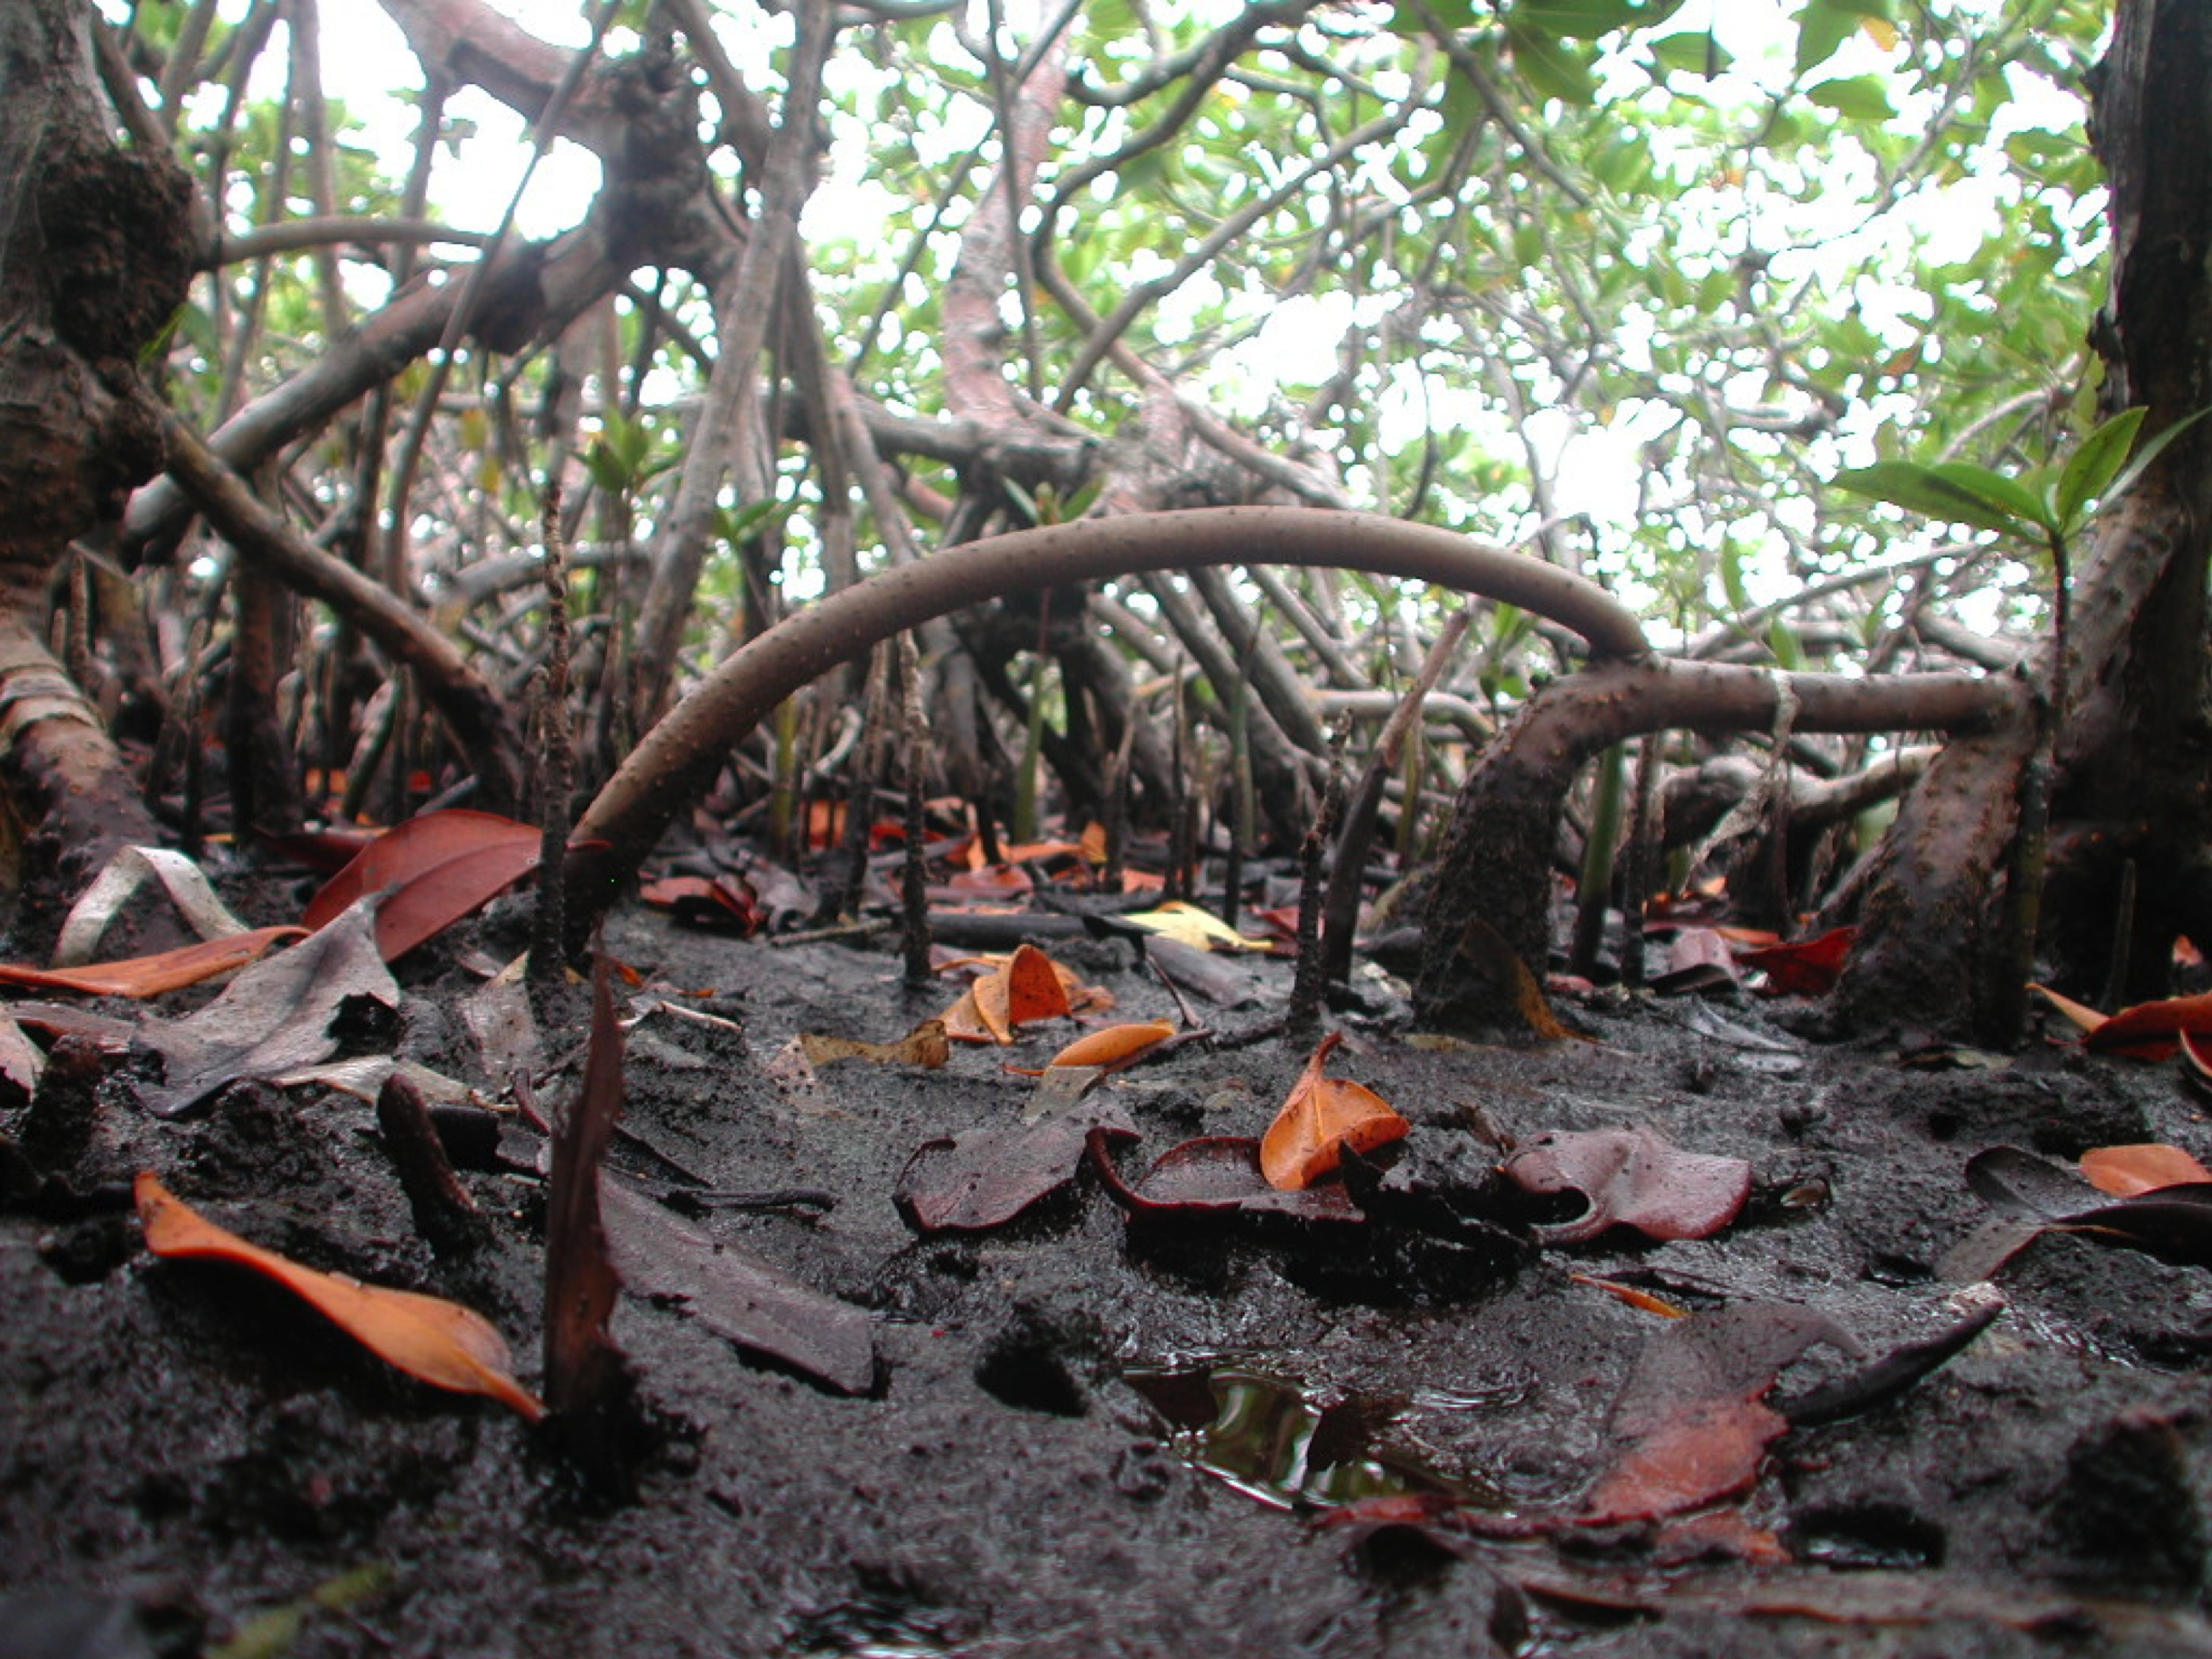 Mangrove roots help to build the peat underlying mangrove islands and protect against erosion.<div class='credit'><strong>Credit:</strong> Mangrove roots help to build the peat underlying mangrove islands and protect against erosion.</div>